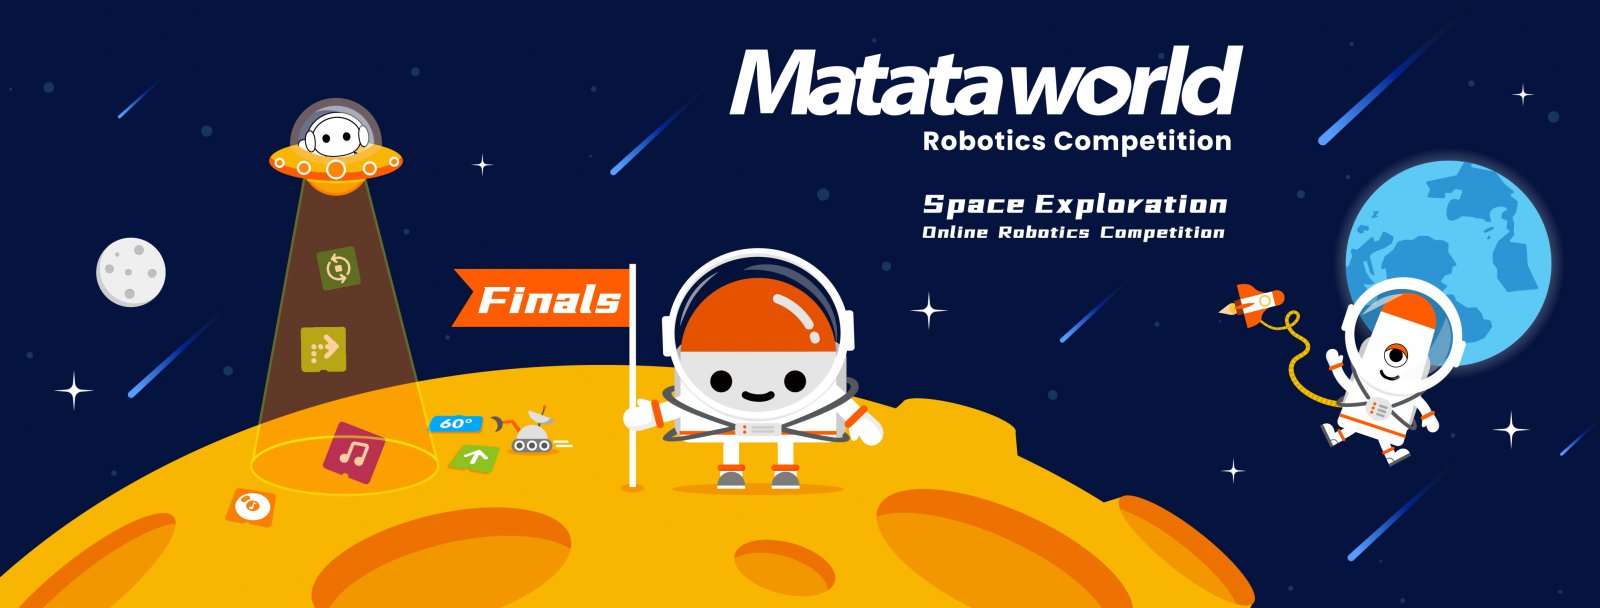 Matatalab Competition Space Exploration